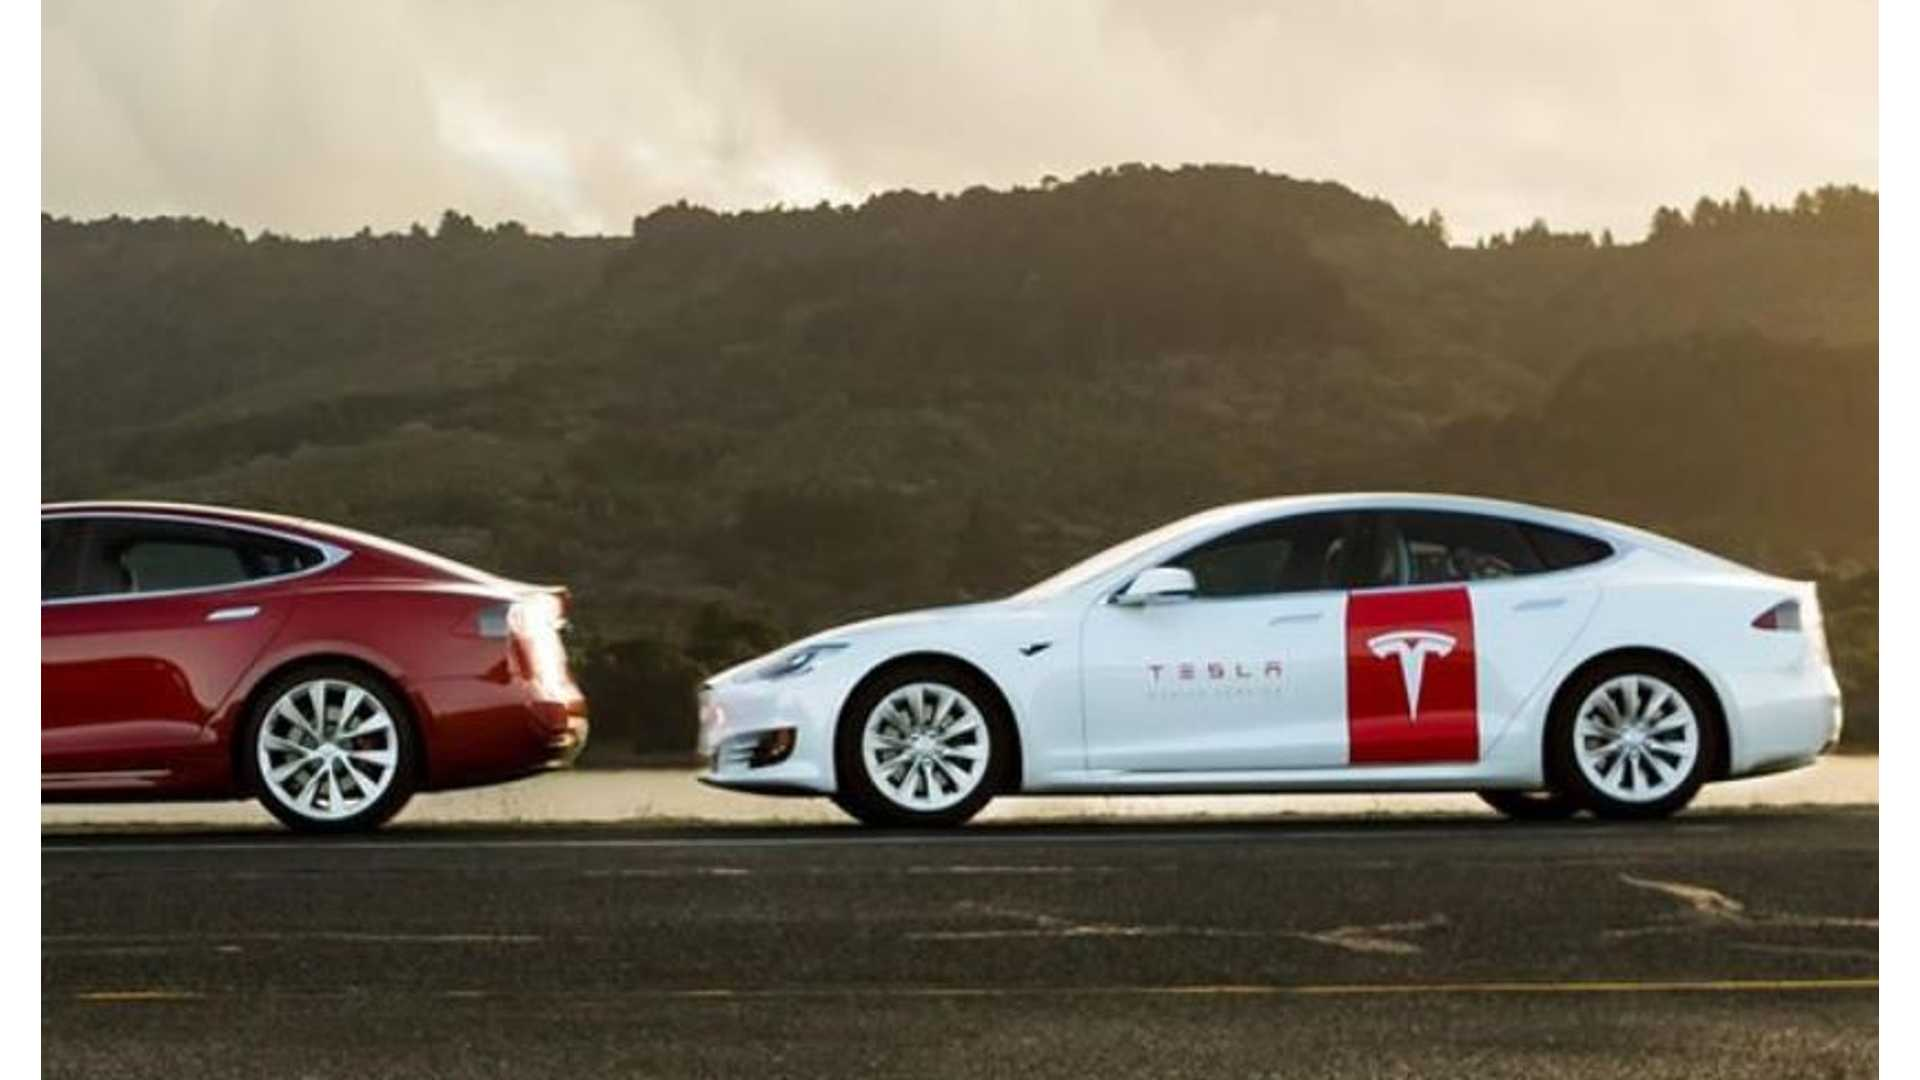 Tesla Showcases Converted Mobile Service Model S Video